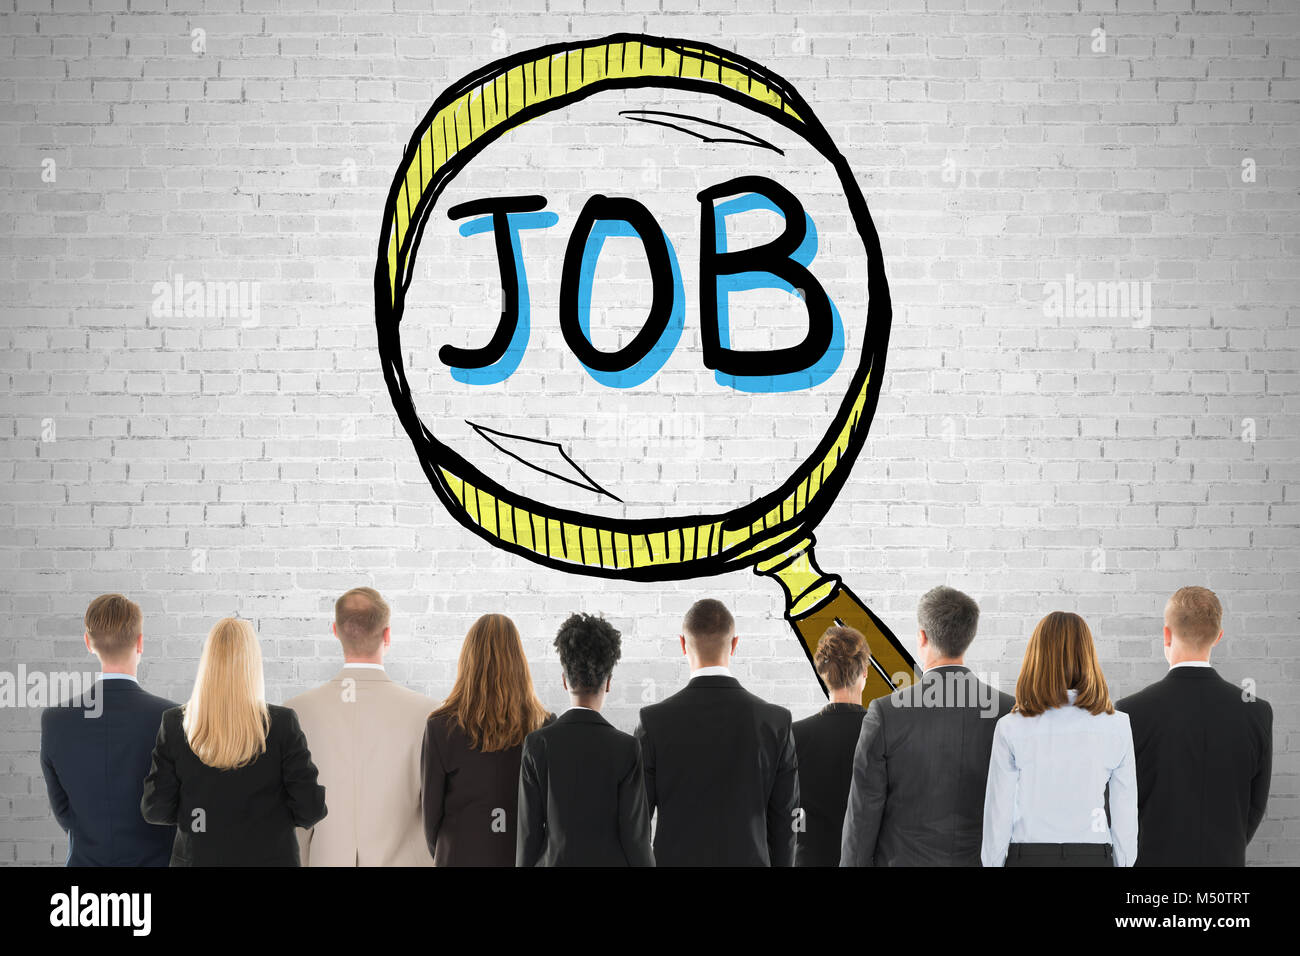 People Looking At Job Search And Hiring Concept On Wall - Stock Image